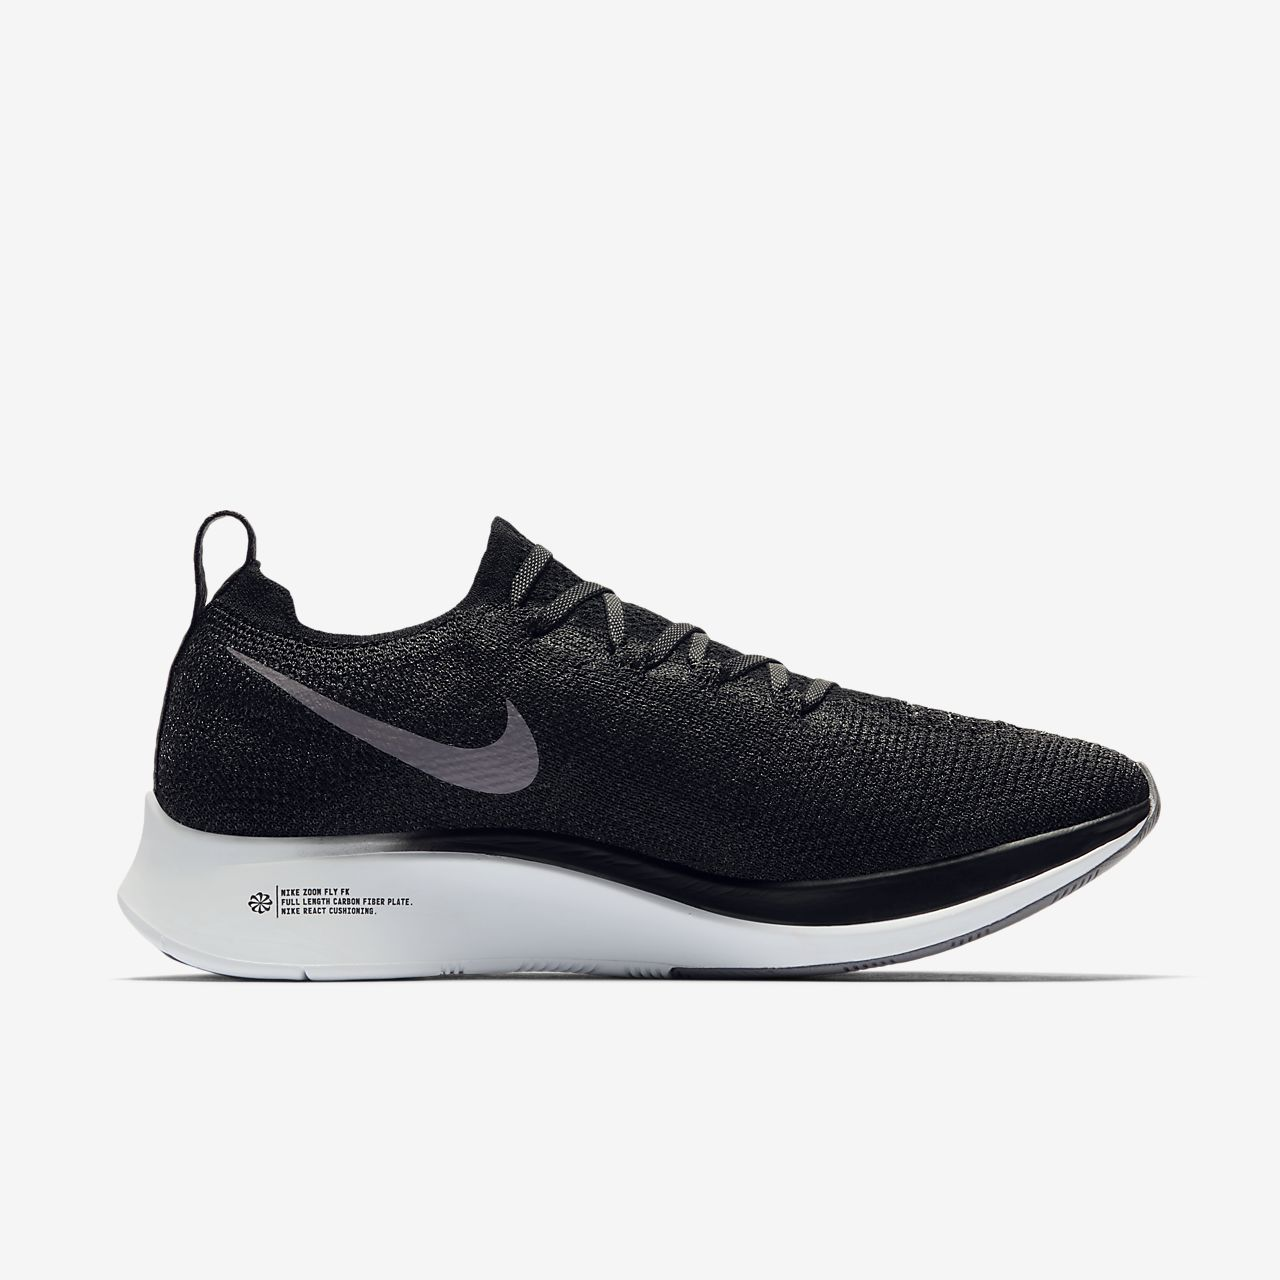 cheap for discount 7399d 82ff8 Nike Zoom Fly Flyknit Women's Running Shoe